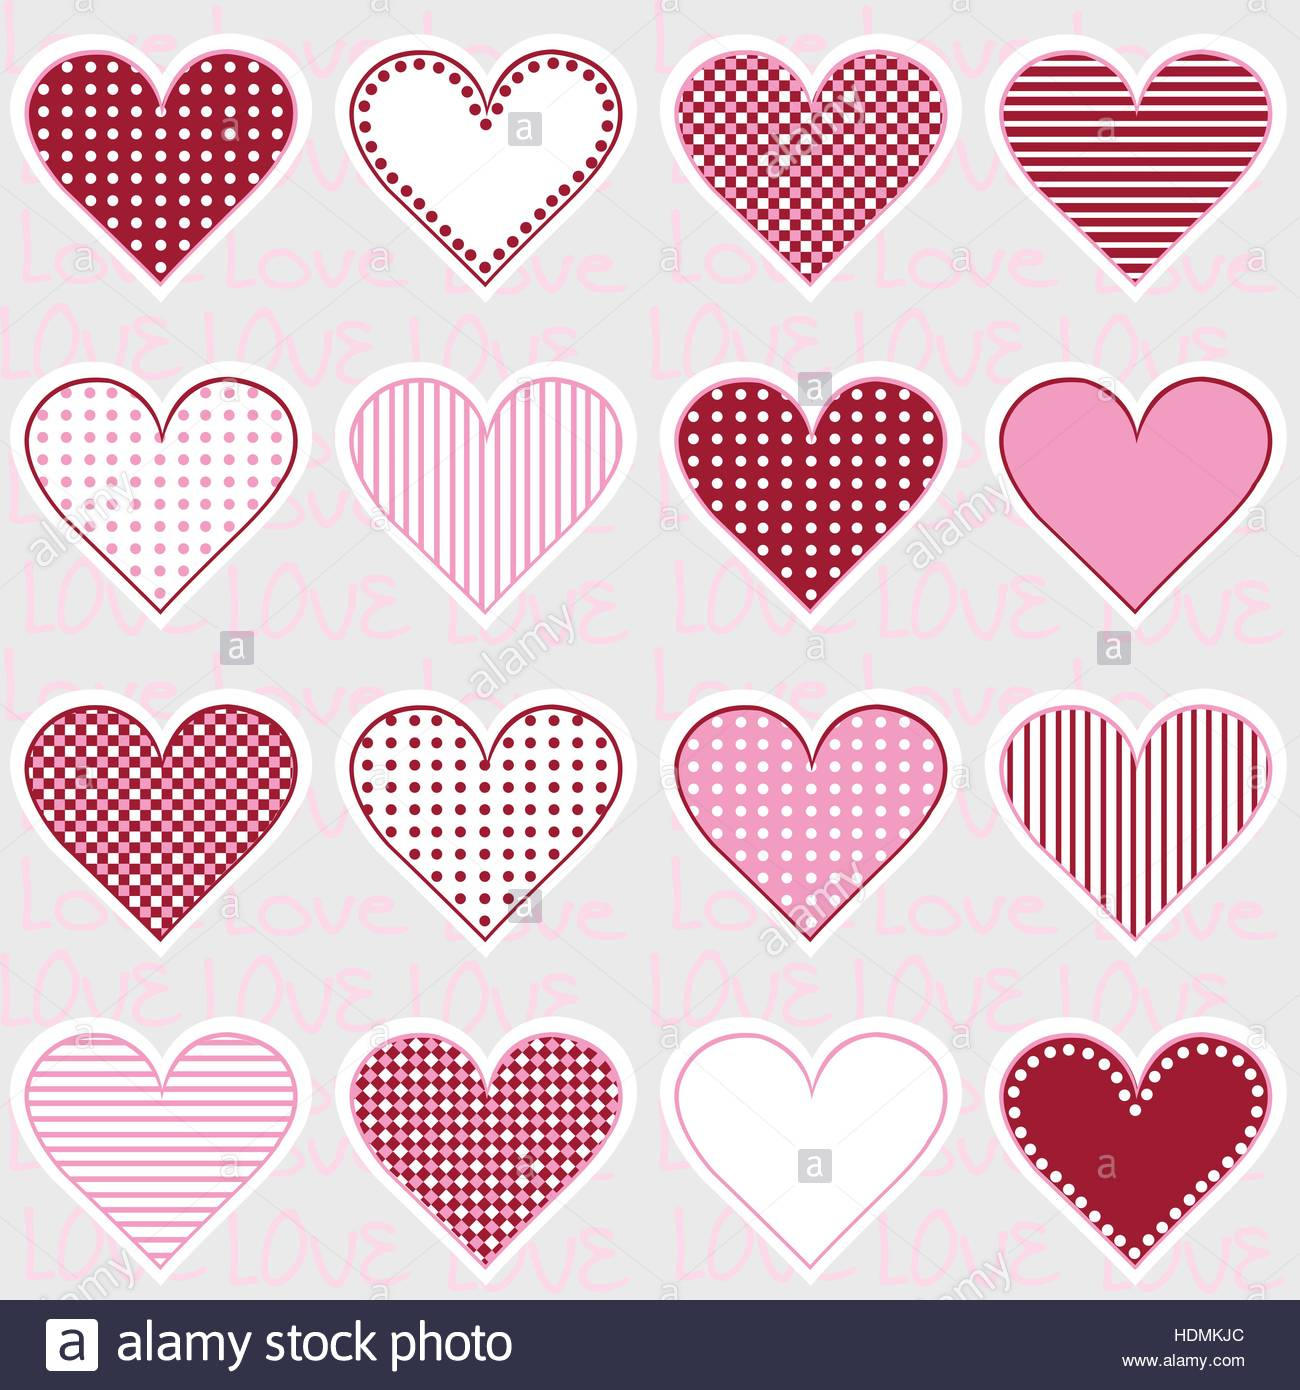 Love background with heart frames on pink pattern for baby girl love background with heart frames on pink pattern for baby girl jeuxipadfo Gallery